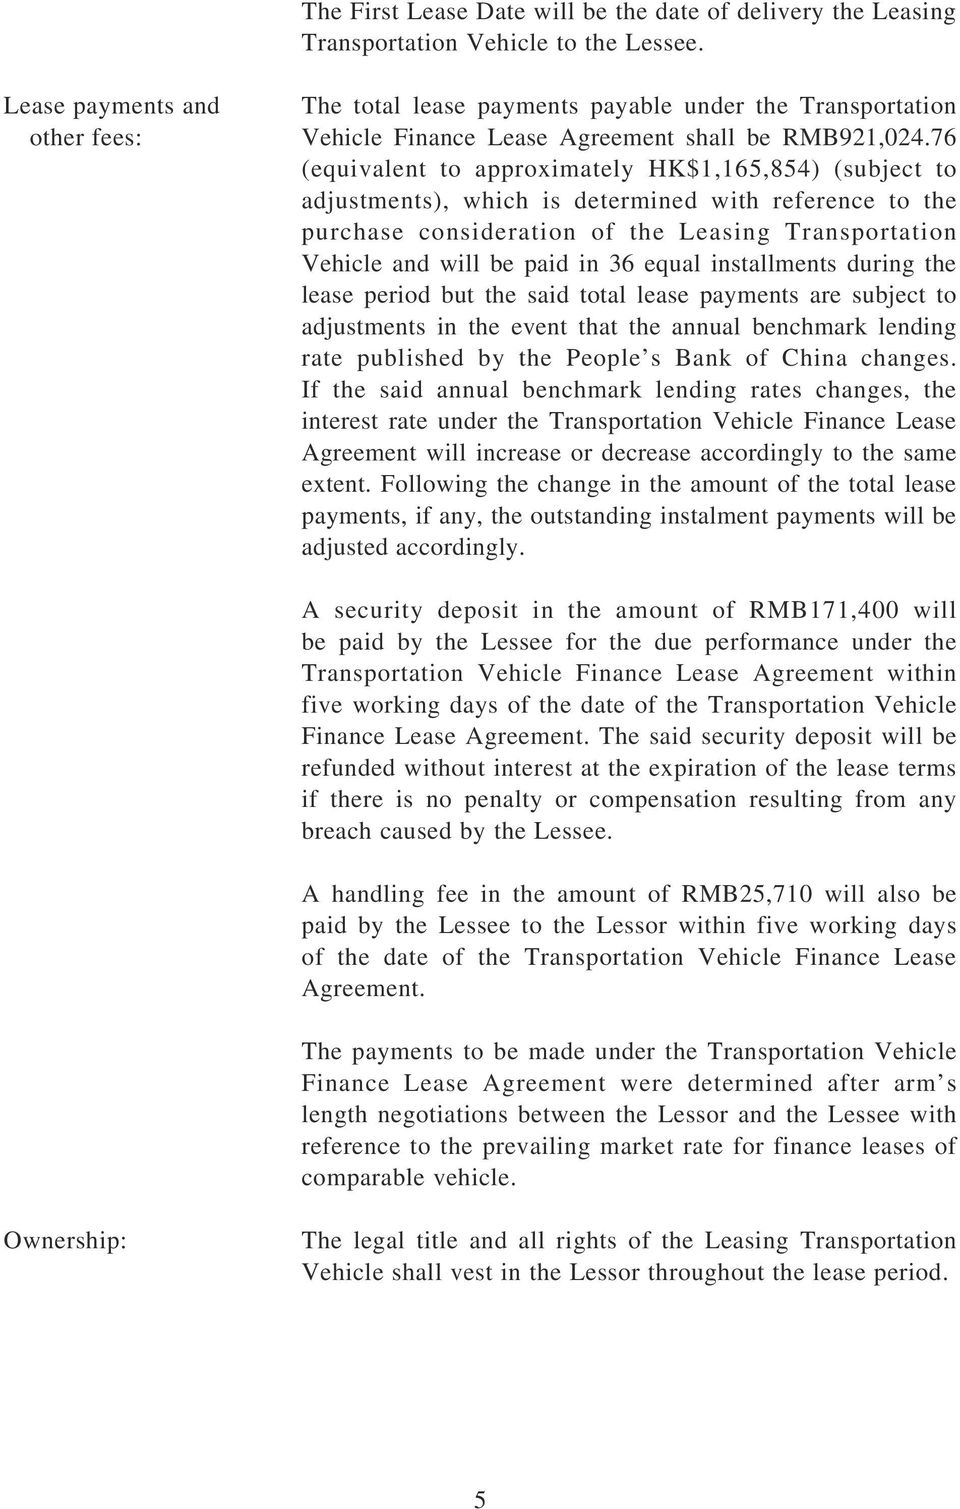 76 (equivalent to approximately HK$1,165,854) (subject to adjustments), which is determined with reference to the purchase consideration of the Leasing Transportation Vehicle and will be paid in 36